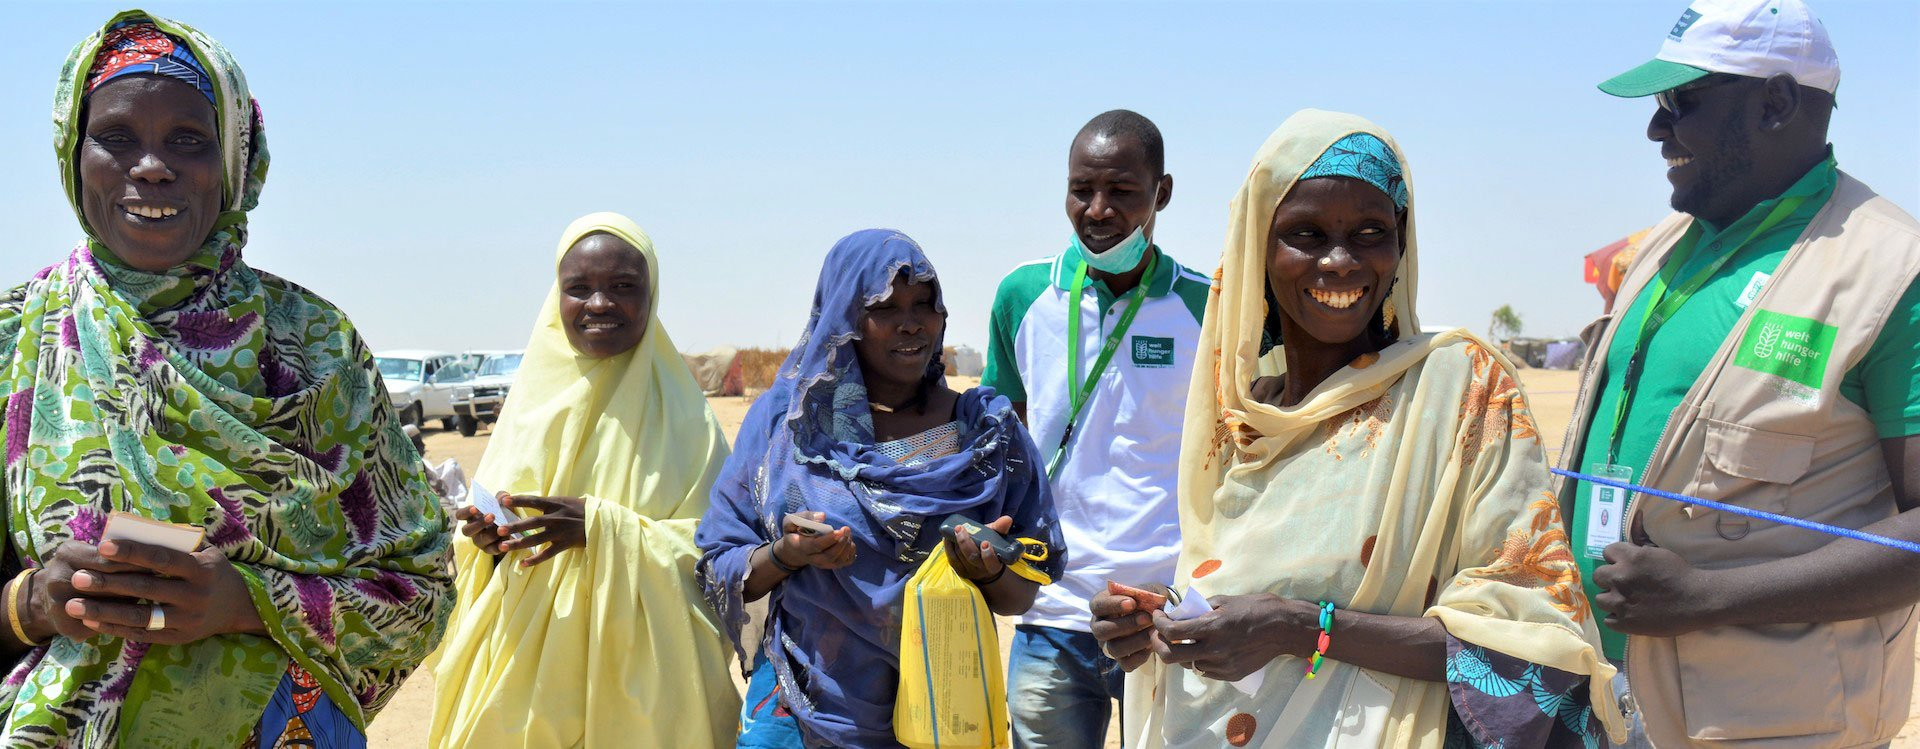 Welthungerhilfe Niger staff with community members